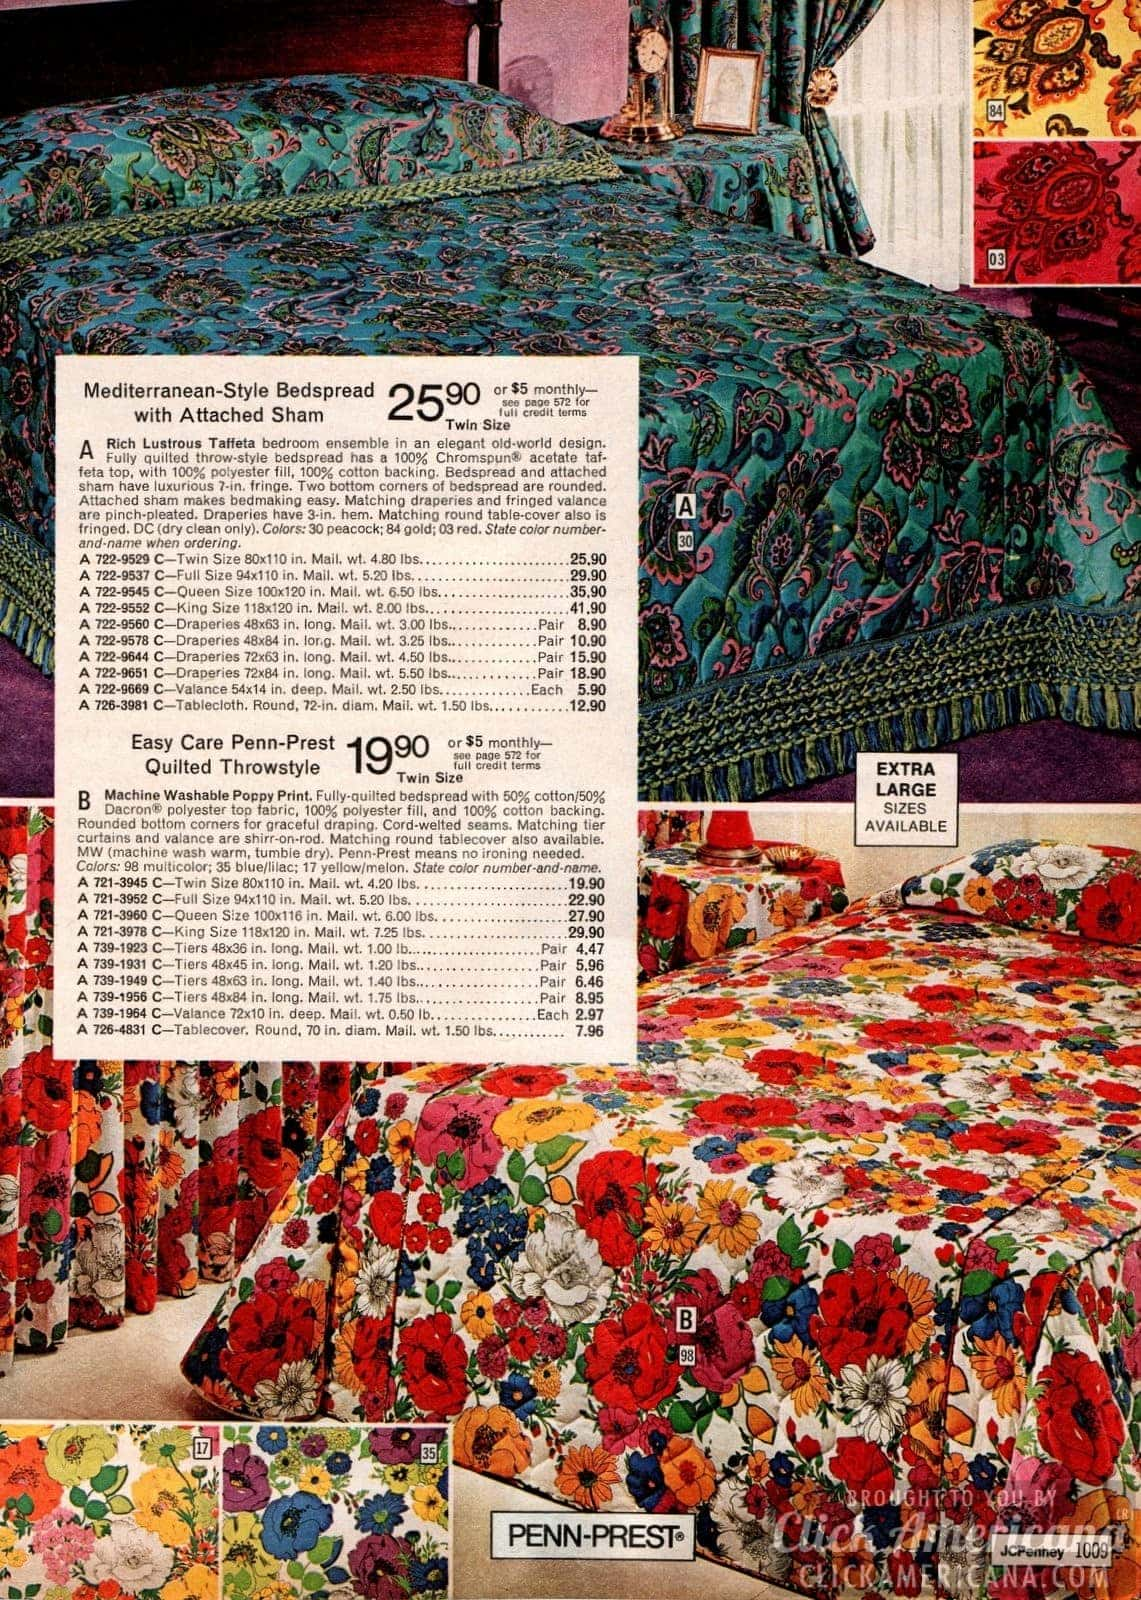 Mediterranean-style bedspread with sham and bright multicolored poppy print quilt